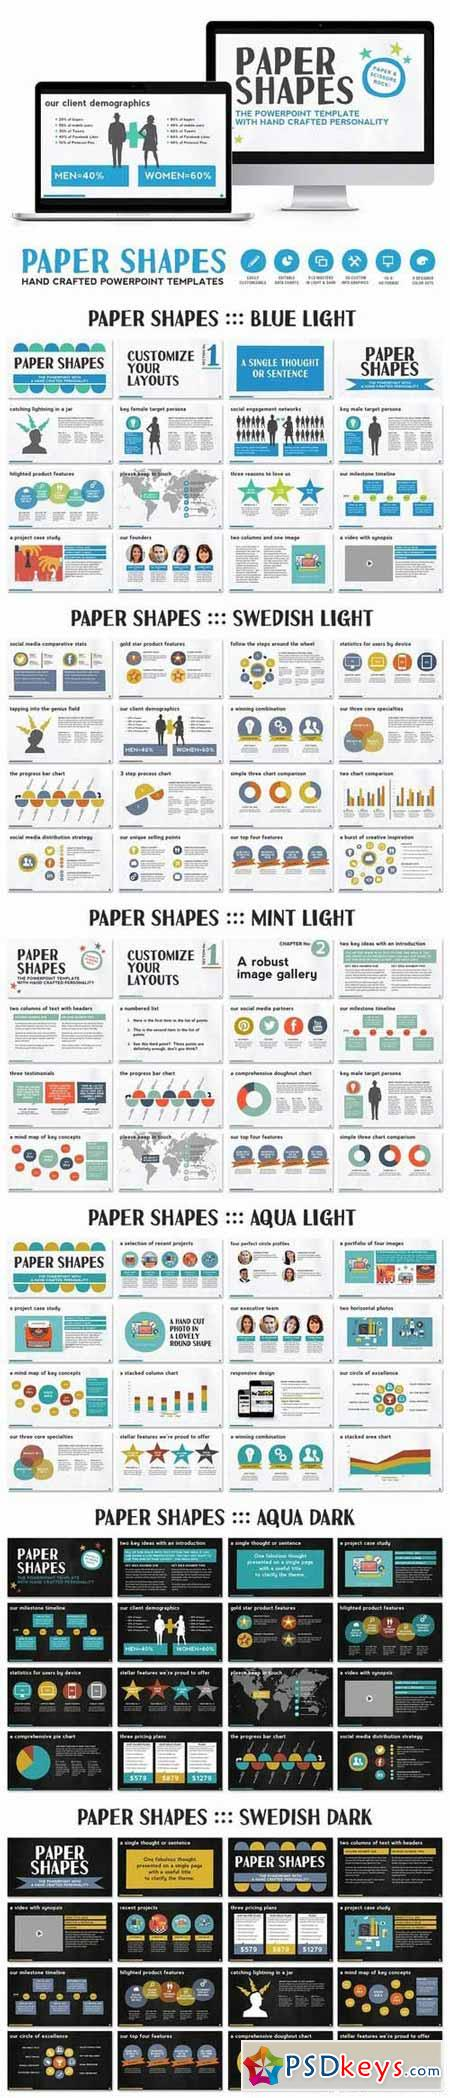 Paper Shapes Powerpoint Presentation 589811 » Free Download